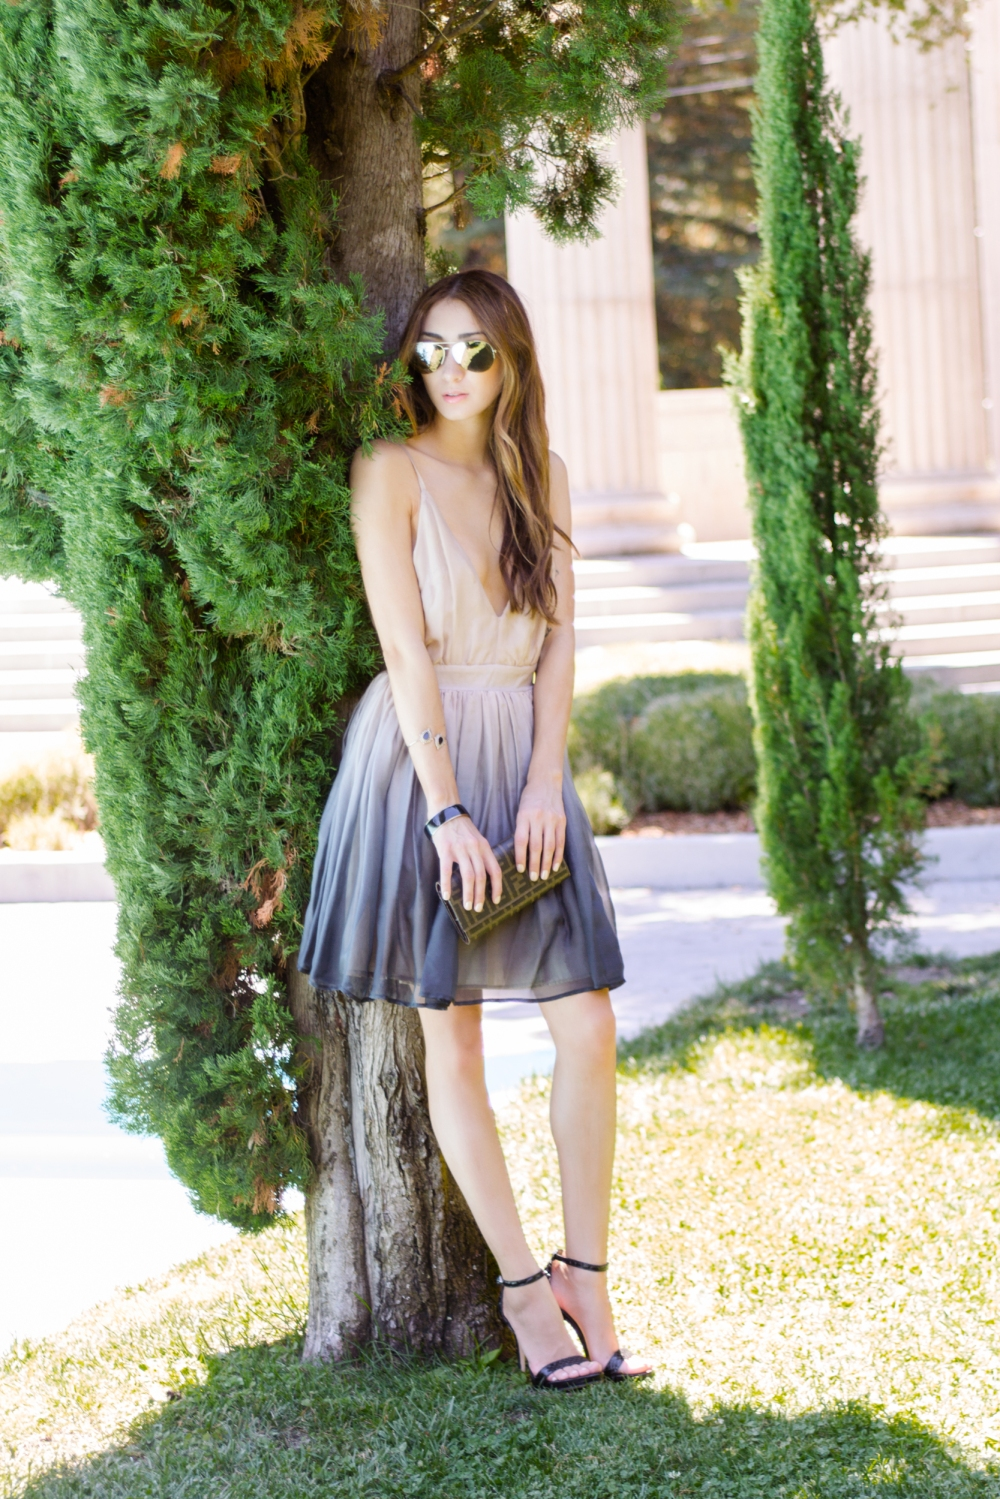 Alyssa Nicole Ombre Dress, Michael Kors Aviator Sunglasses, Fendi Clutch, Sam Edelman Heels